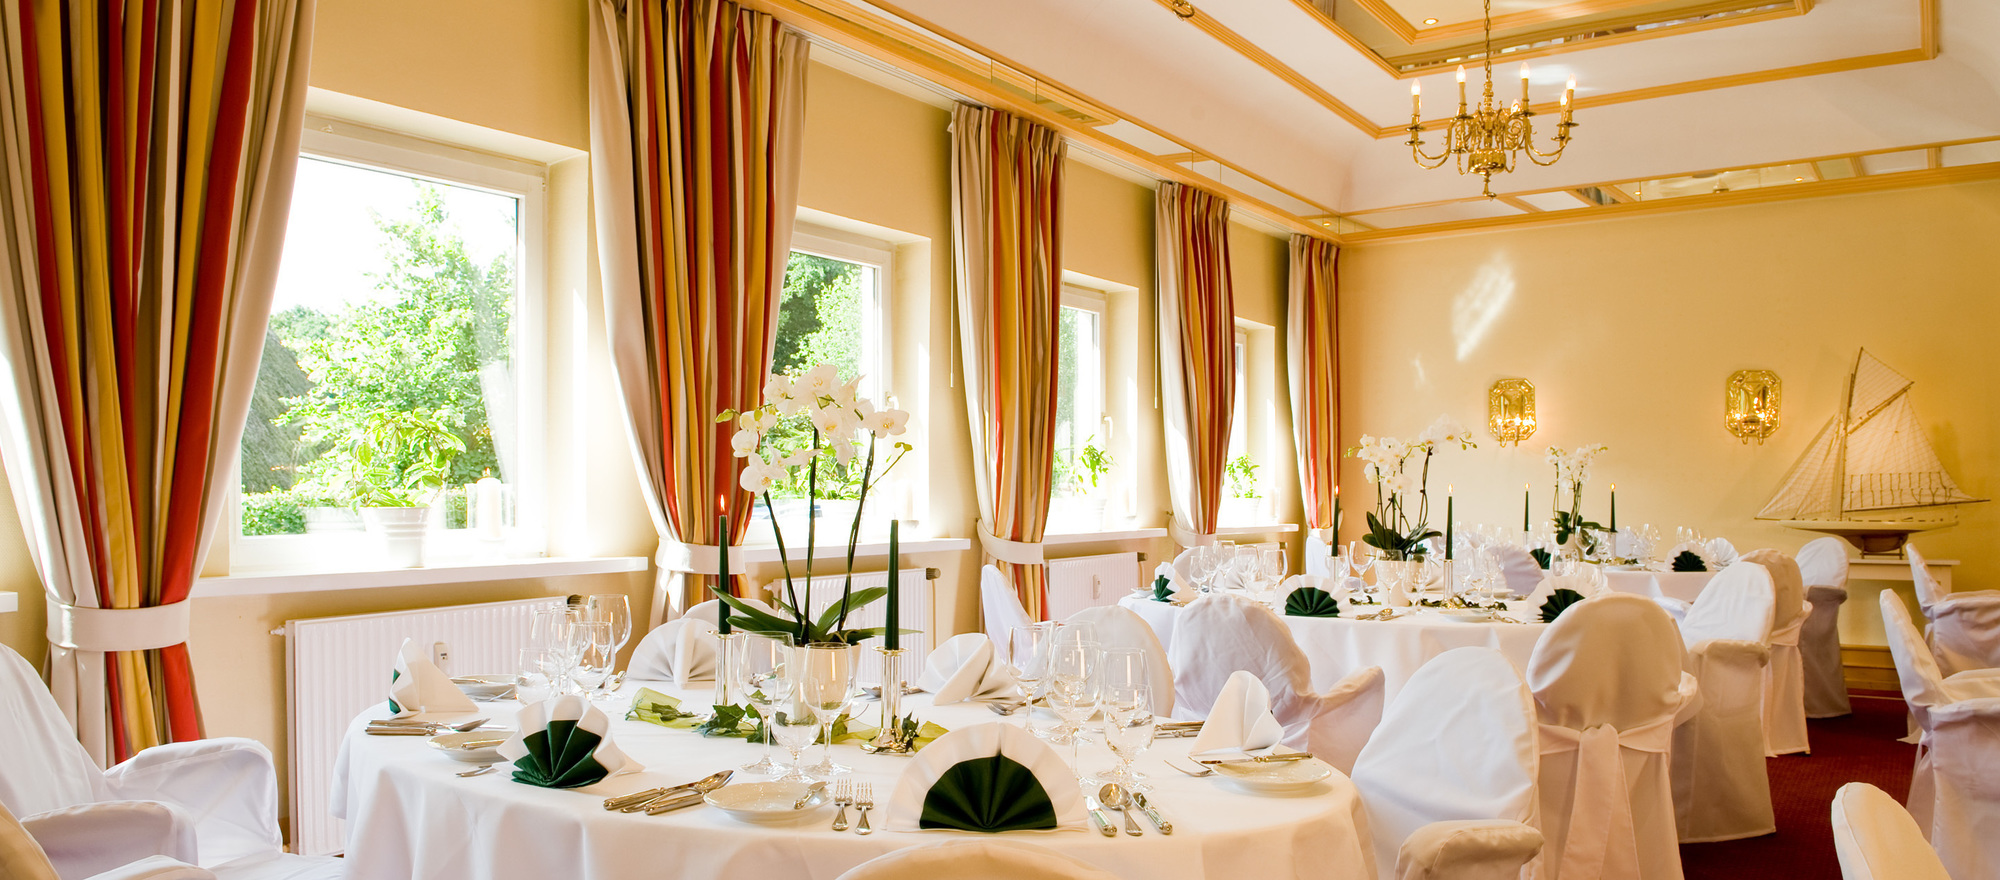 Finely elegant hall with North German ambience in the 4-star hotel Ringhotel Birke in Kiel